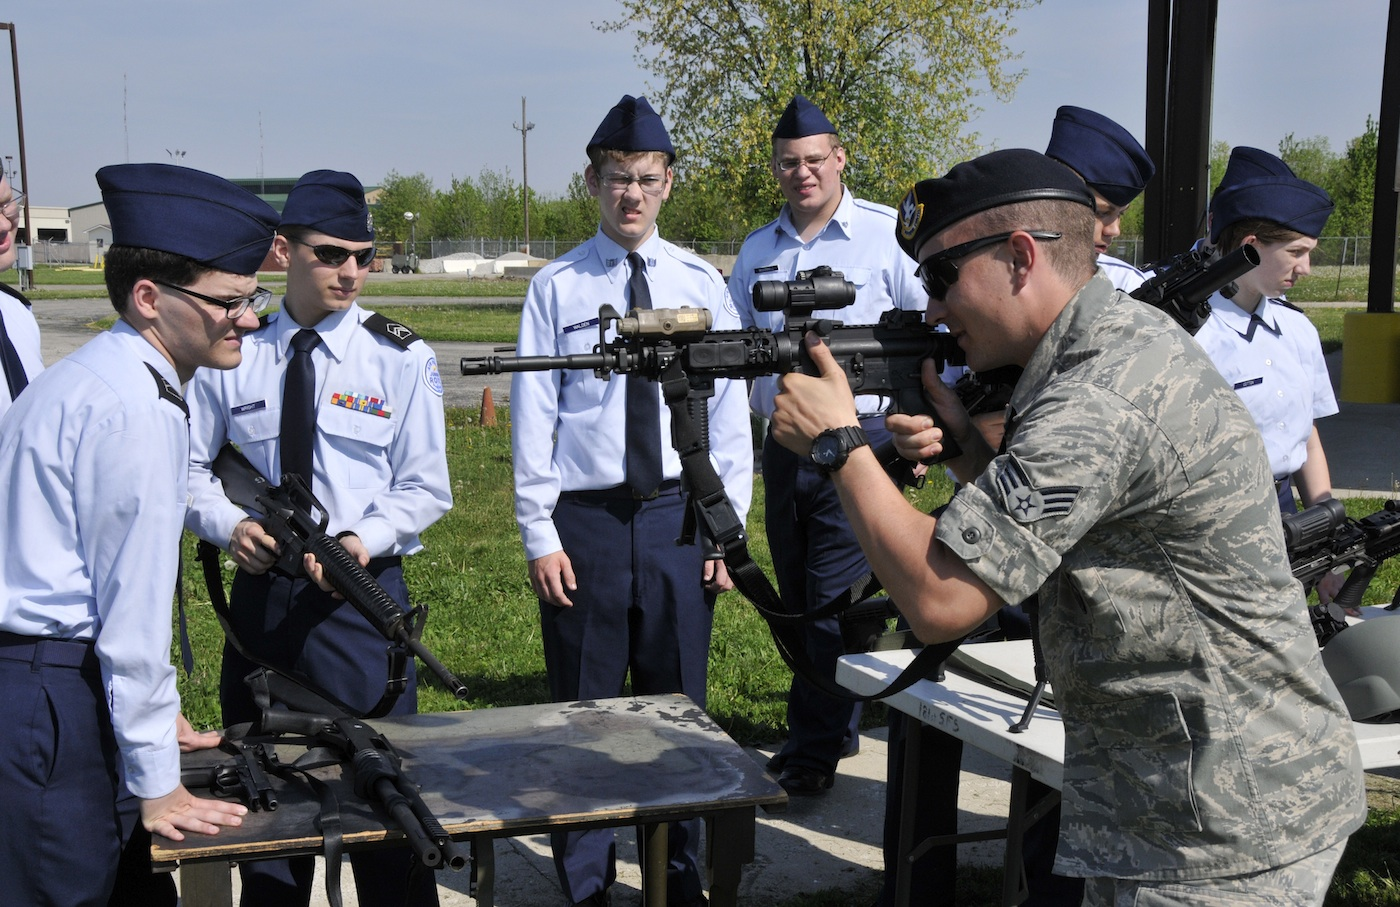 A airman in the United States Air Force demonstrates proper firing position